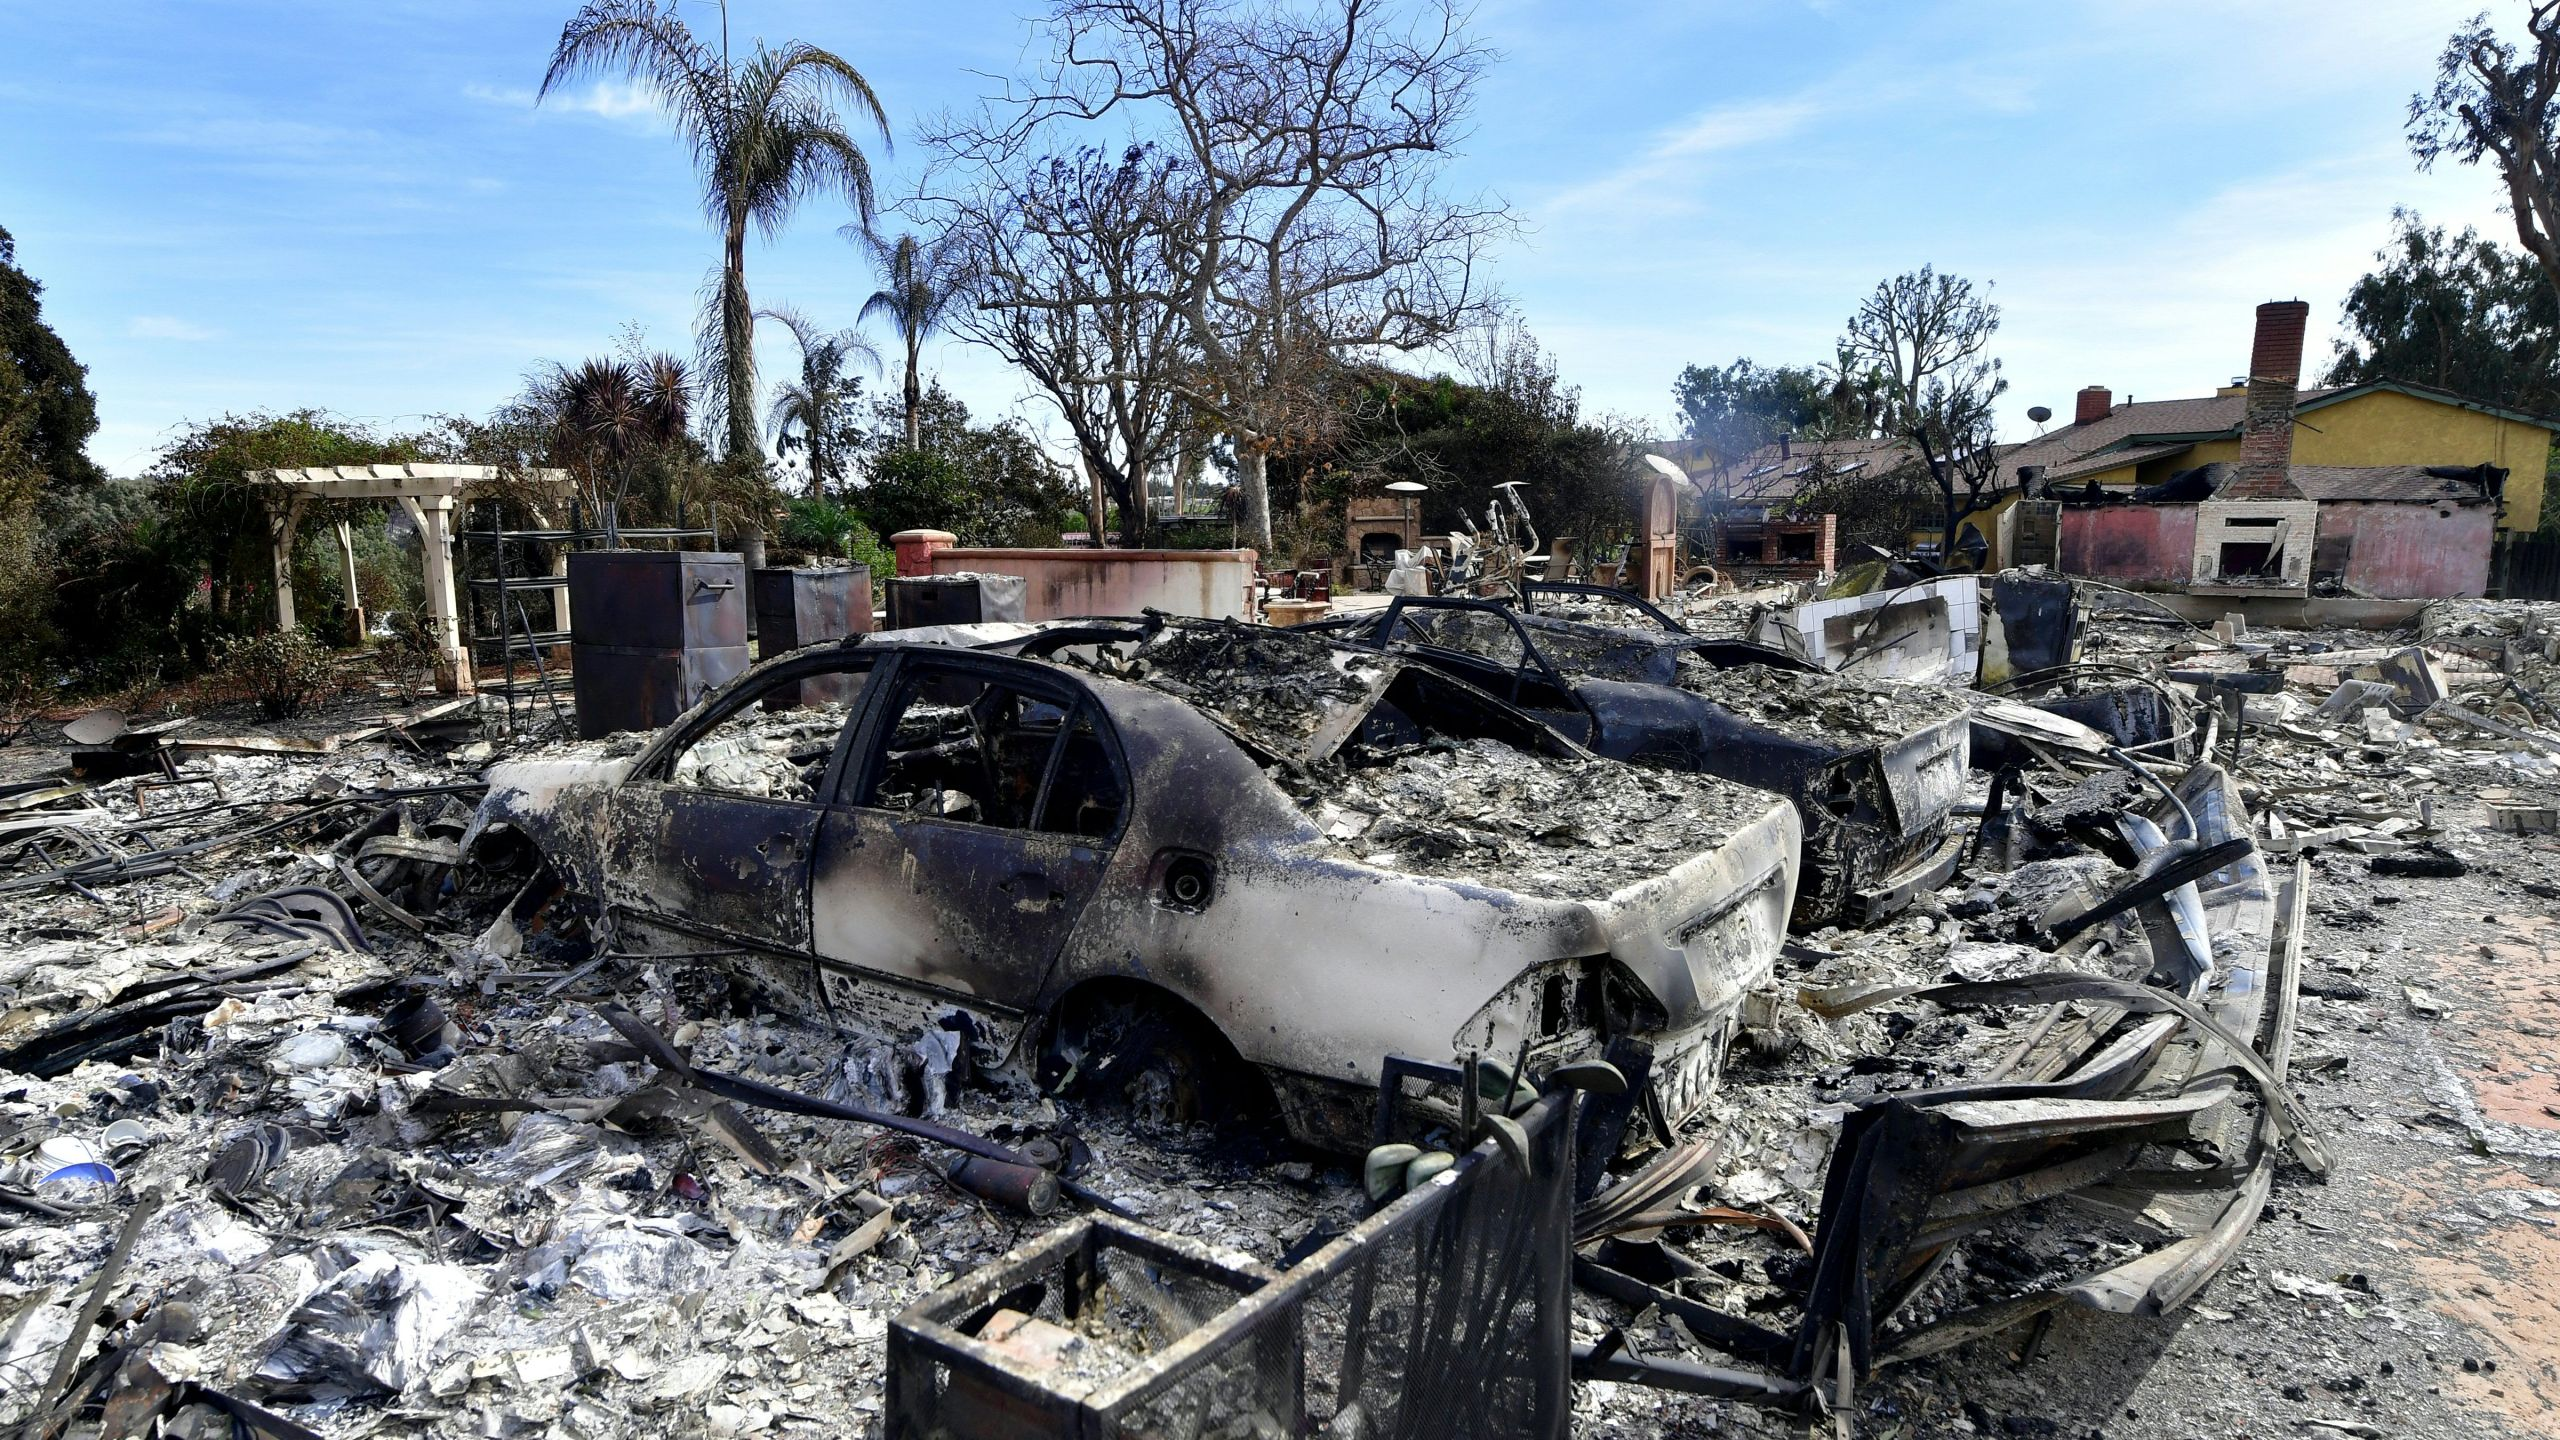 The remains of burnt down homes and vehicles are seen after the Woolsey Fire in Malibu on Nov. 13, 2018. (Credit: FREDERIC J. BROWN/AFP/Getty Images)